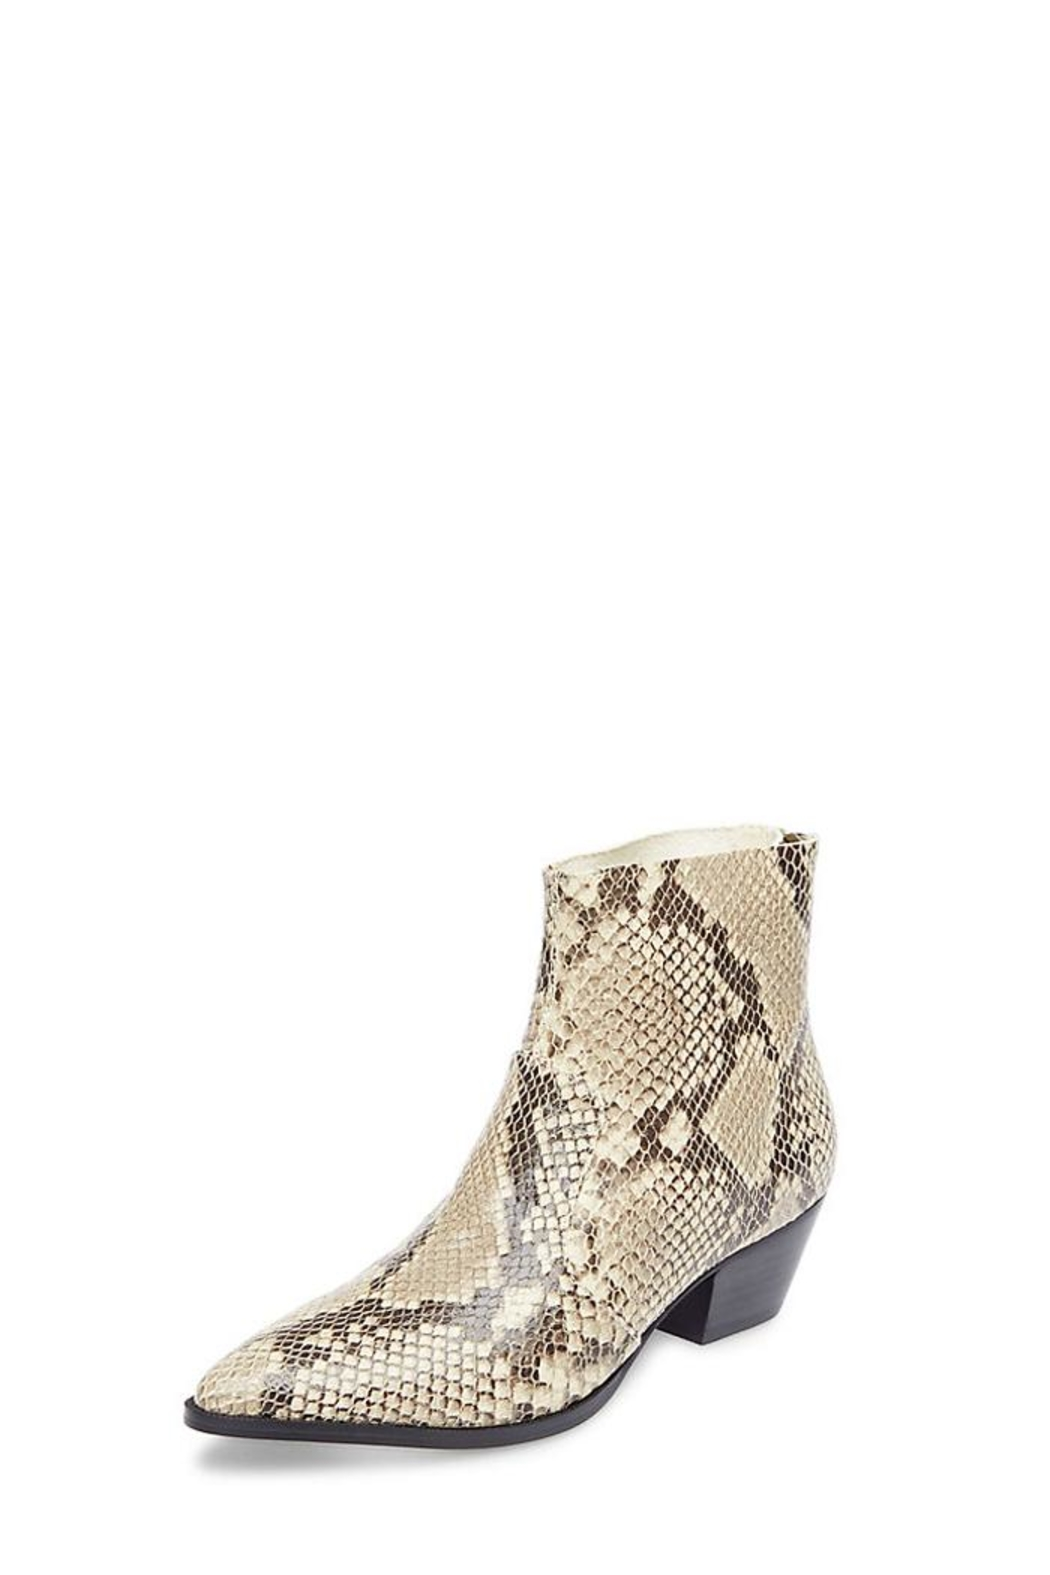 ae3647e91ed Steve Madden Cafe Snakeskin Bootie from New York by Luna — Shoptiques